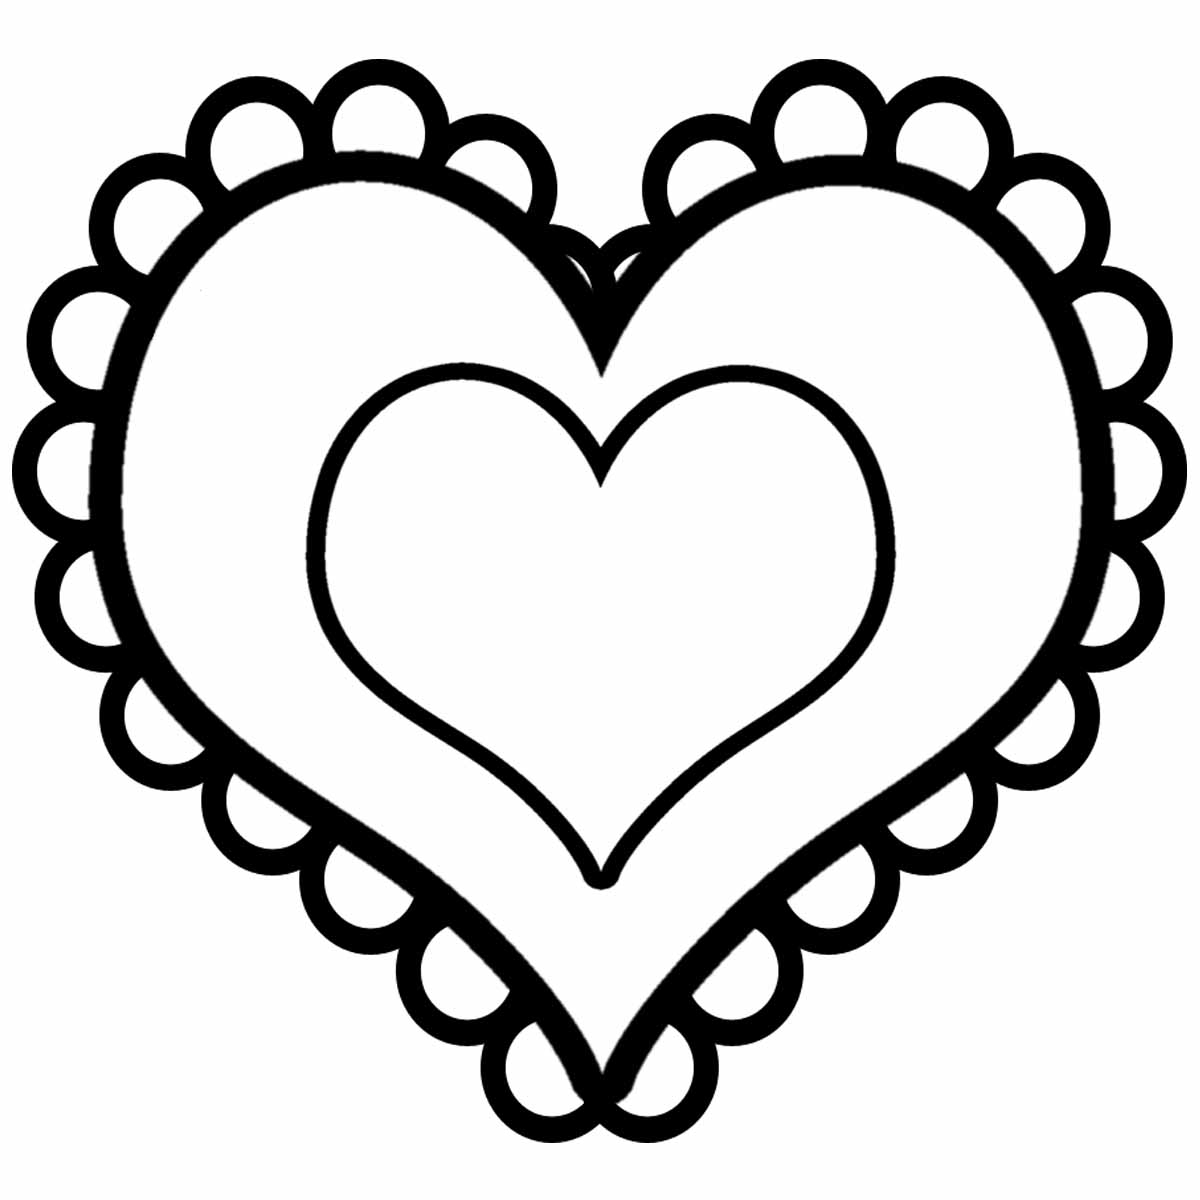 hearts to colour in 35 free printable heart coloring pages colour in hearts to